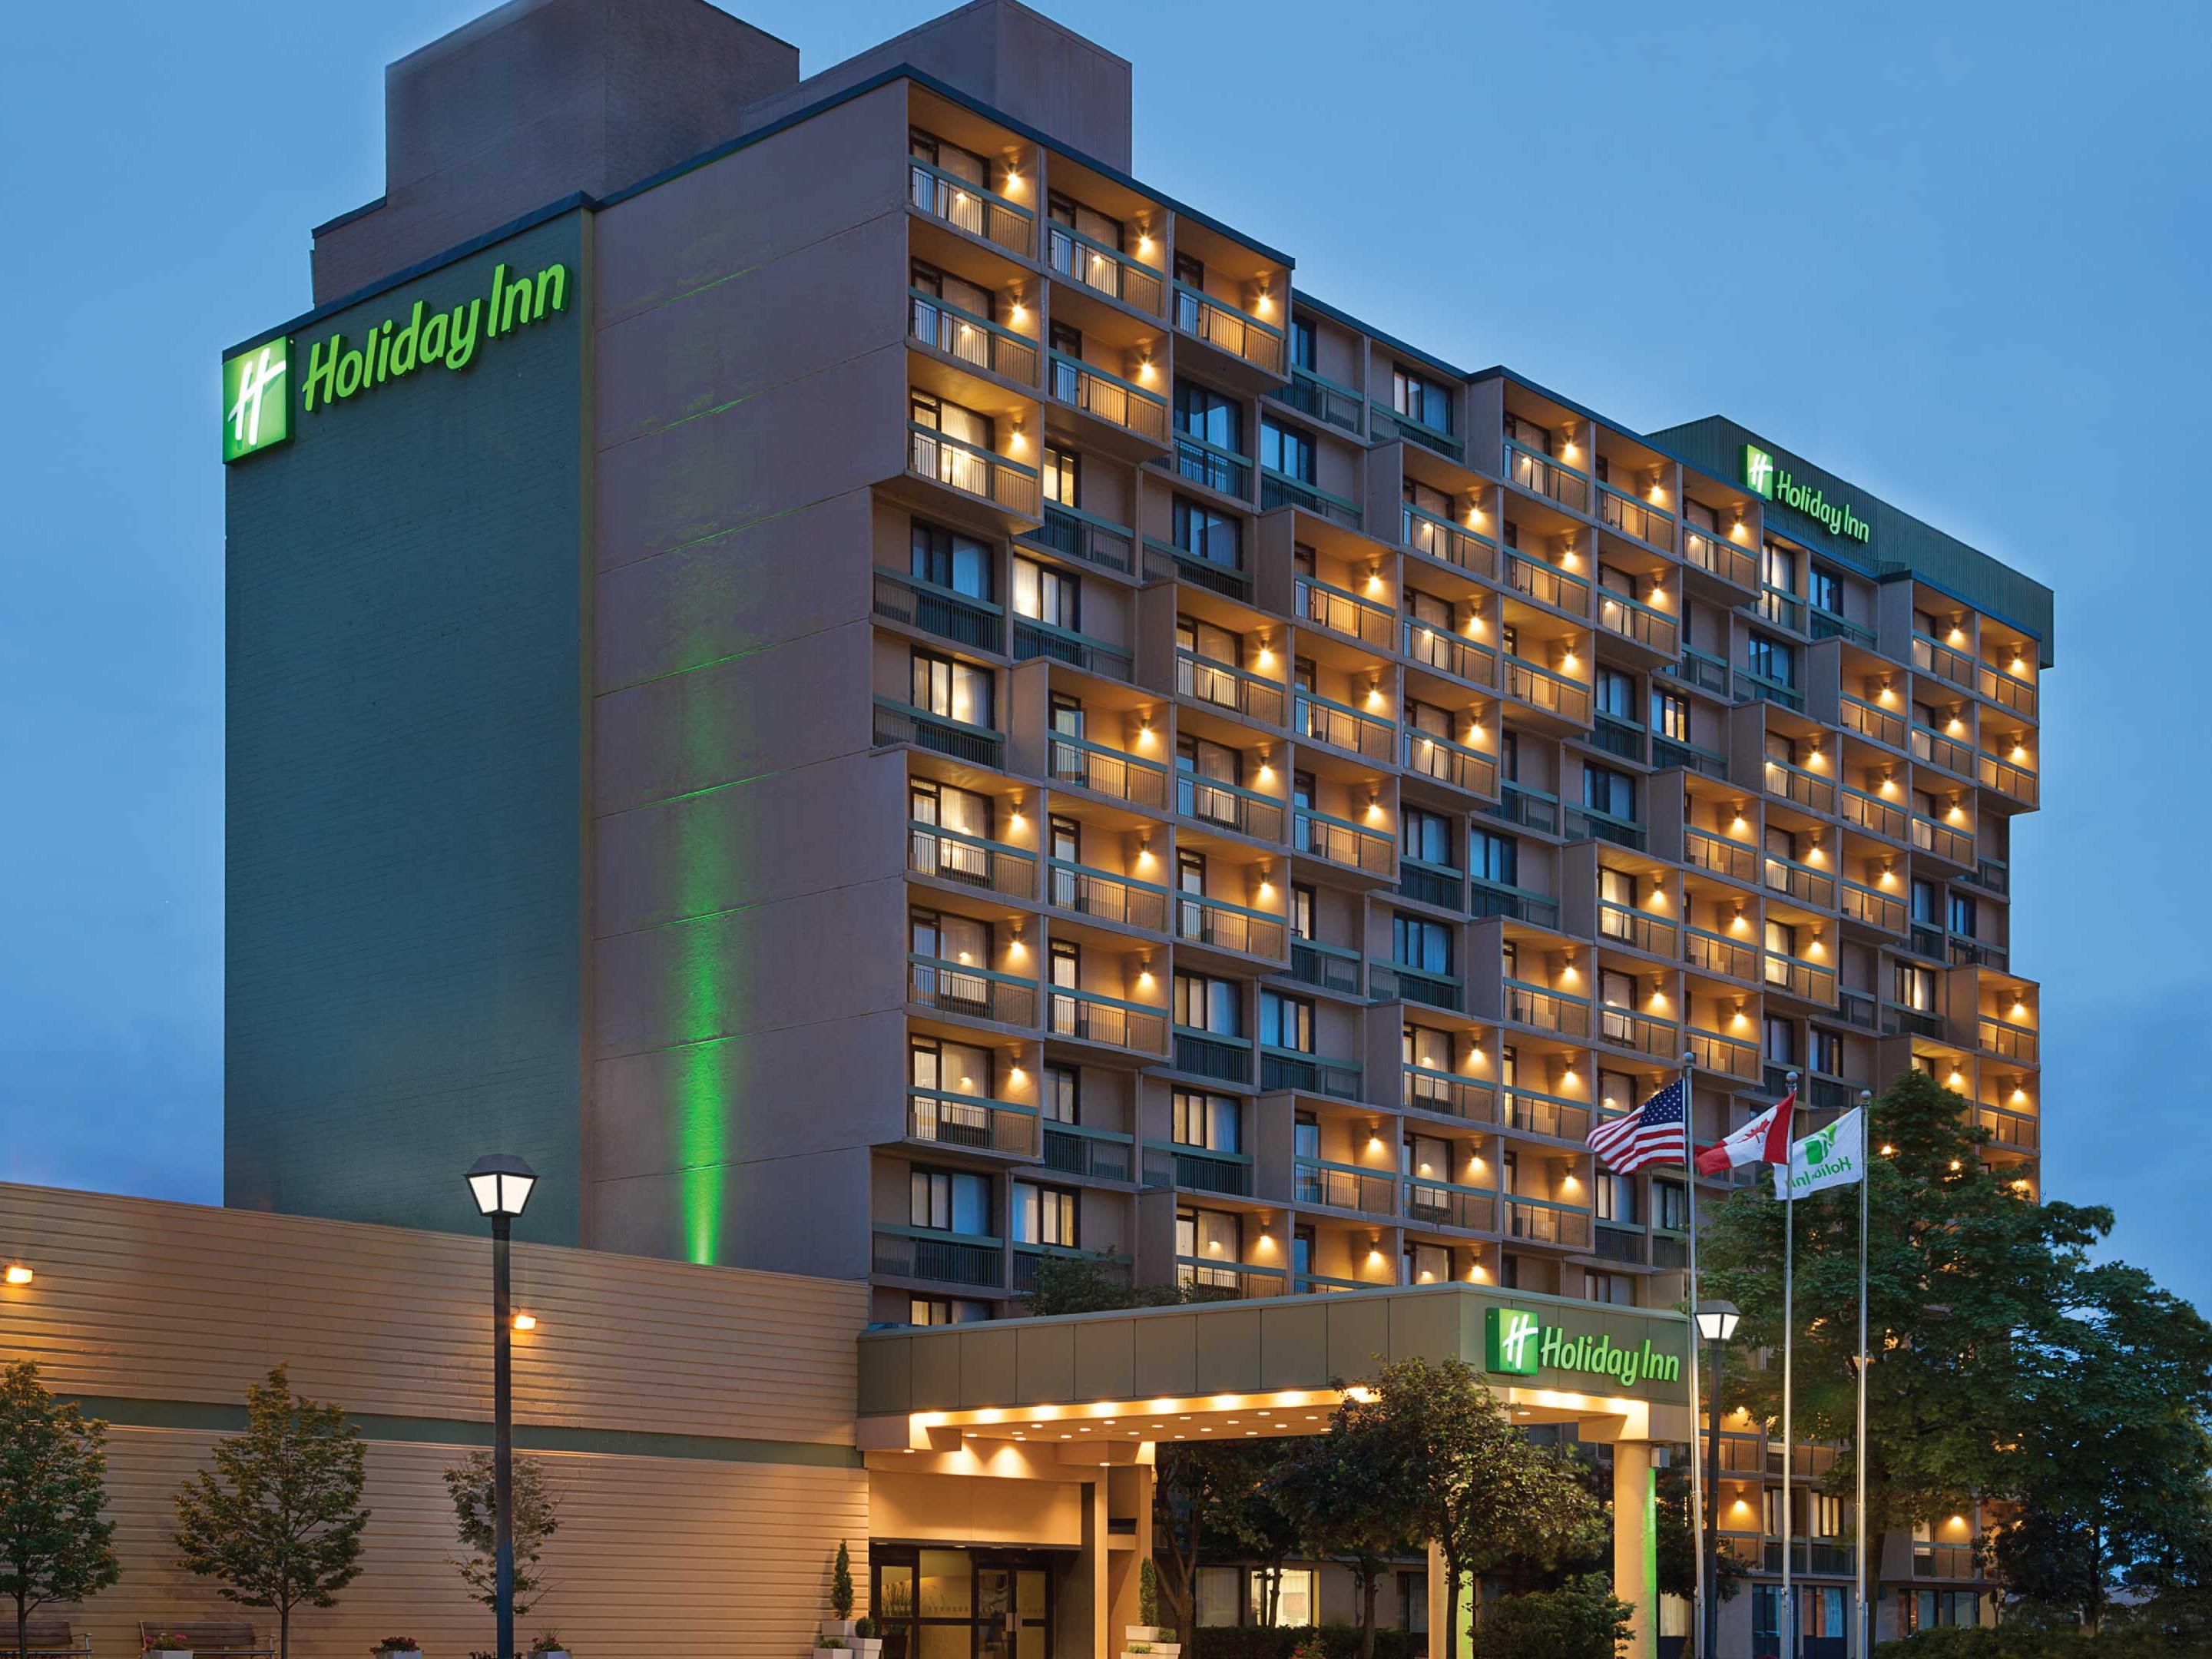 Holiday Inn Express Toronto Affordable Hotels By Ihg